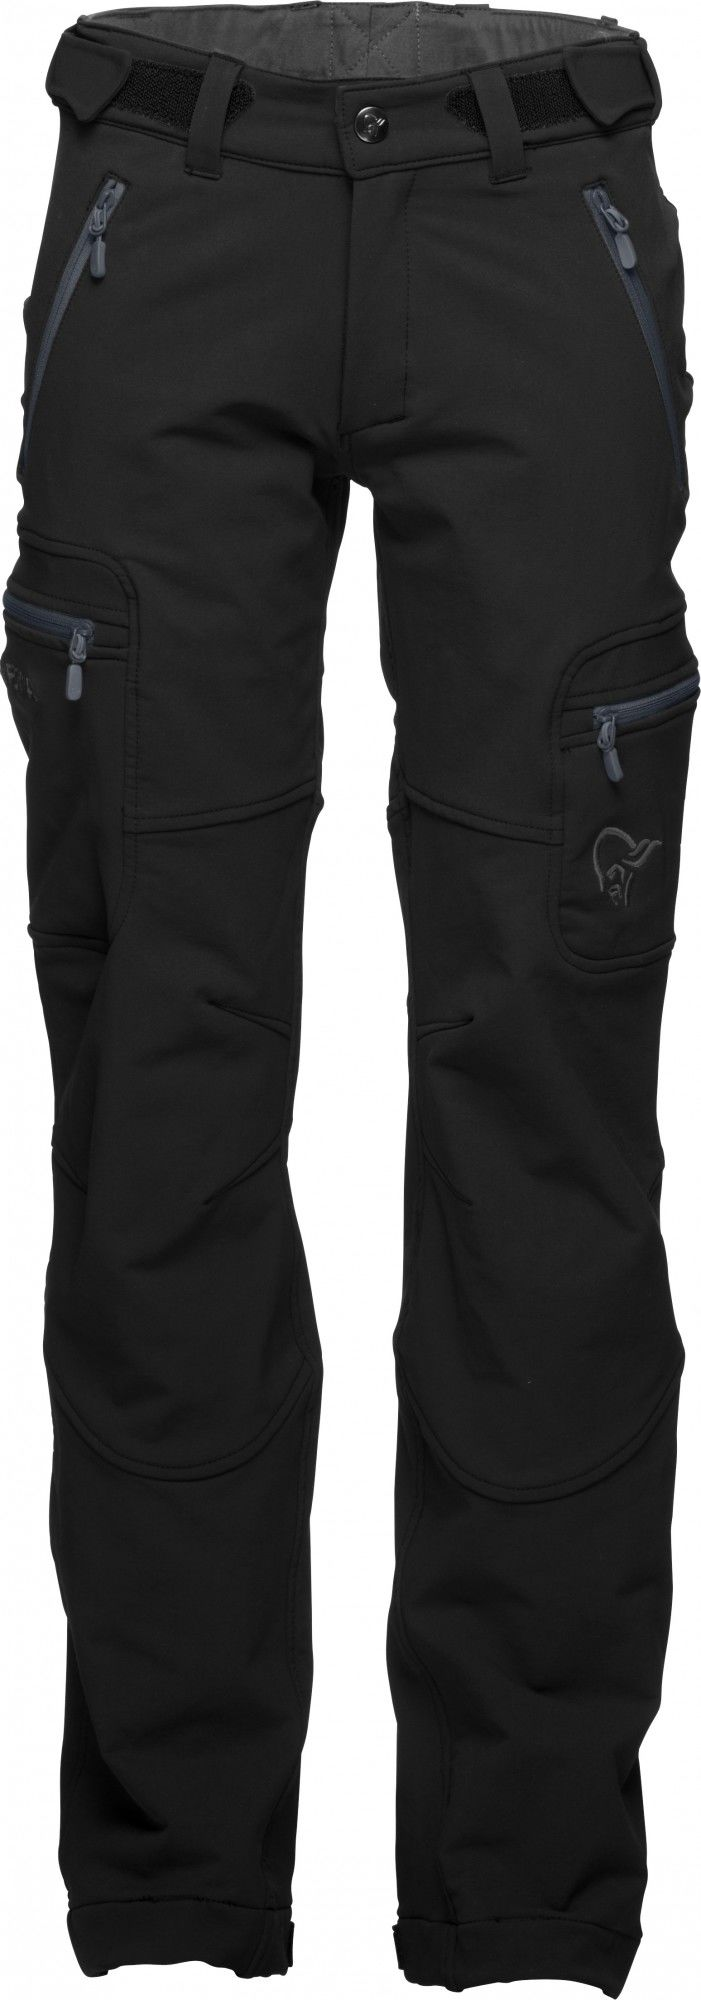 Norrona Junior Svalbard Flex1 Pants | Größe 134,140,146,152,158 | Kinder Hose